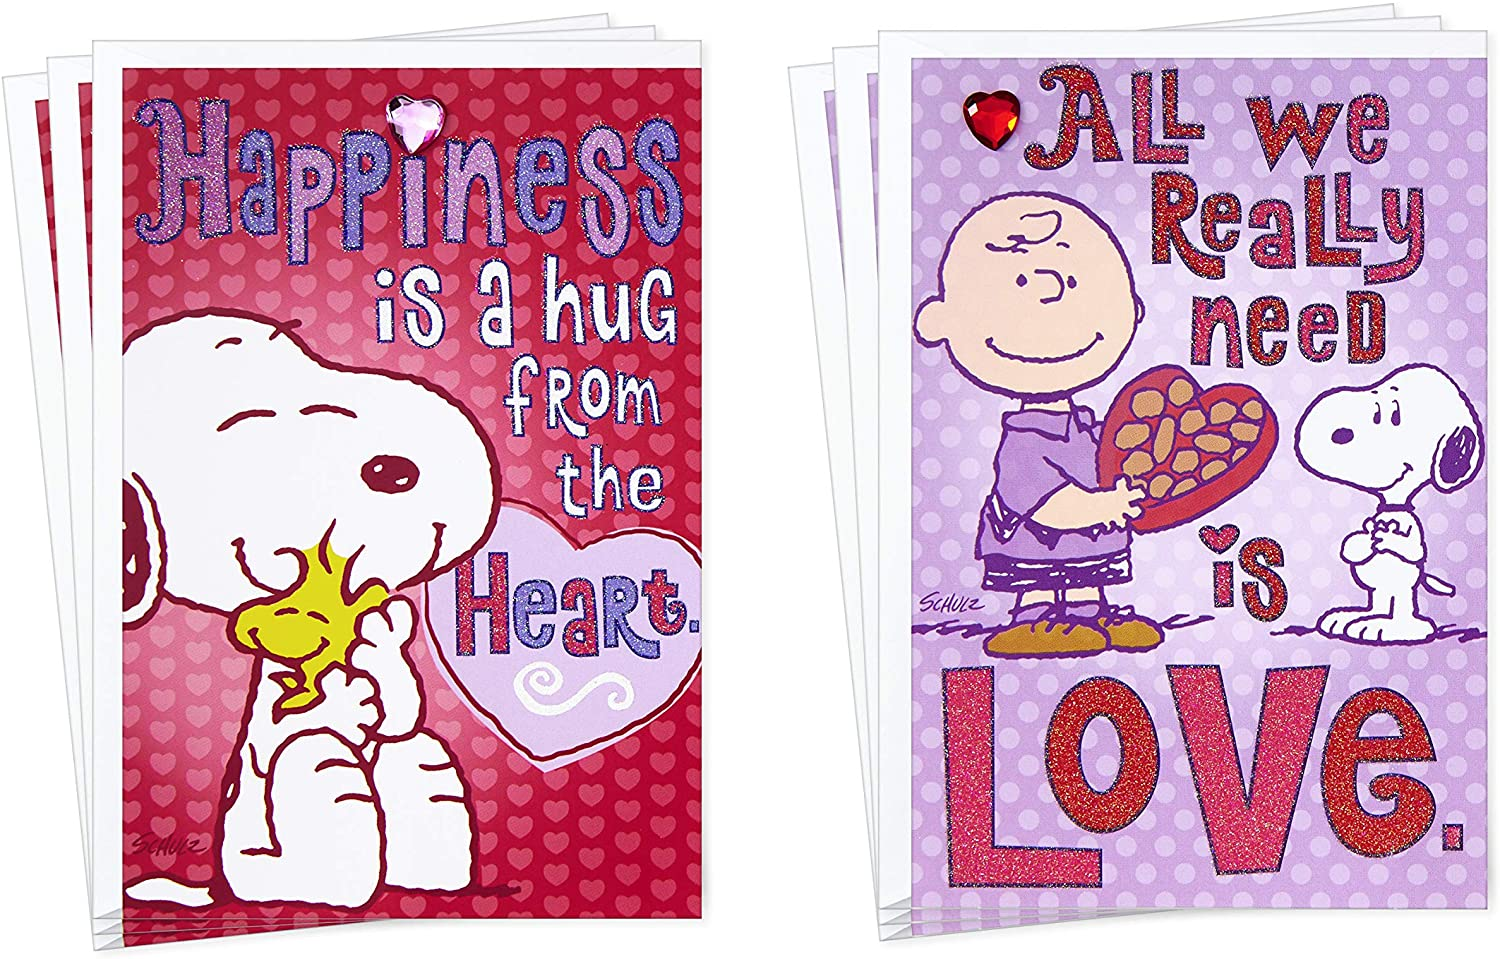 Hallmark Peanuts Valentines Day Cards Assortment for Kids, 6 Valentine's Day Cards with Envelopes (Hug from The Heart)